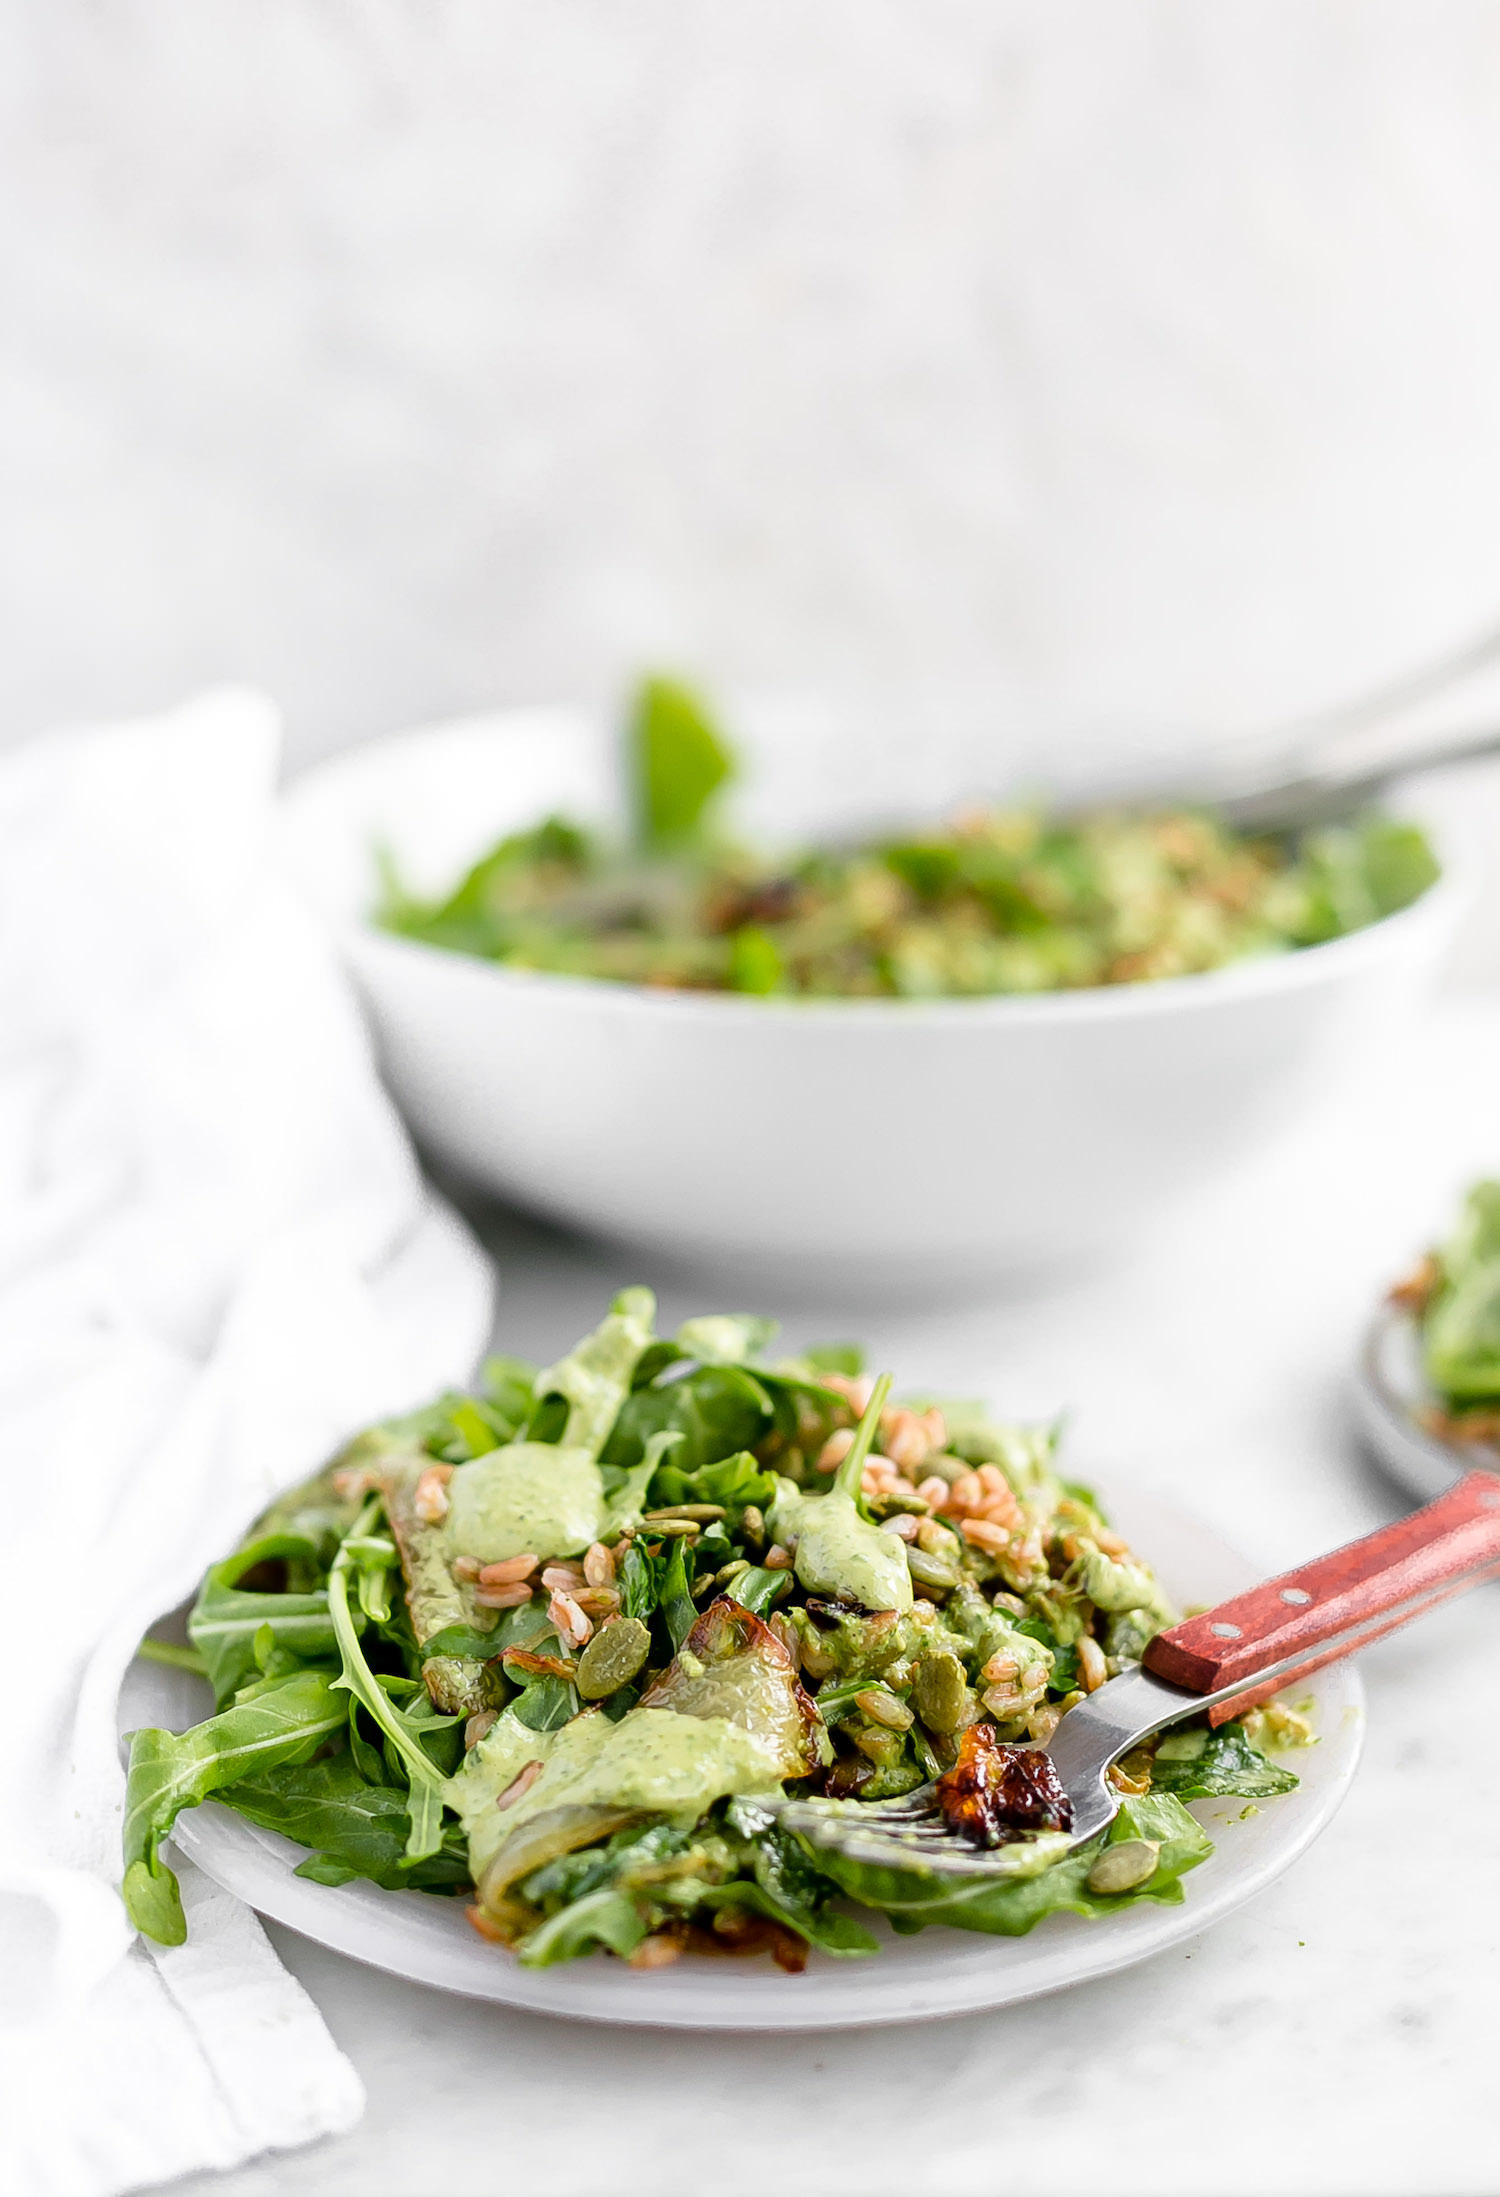 Arugula Farro Caramelized Onion Salad with Green Tahini: fresh arugula, hearty farro, sweet caramelized onions, toasted pumpkin seeds, and a delicious lemon-parsley-tahini dressing. | TrufflesandTrends.com